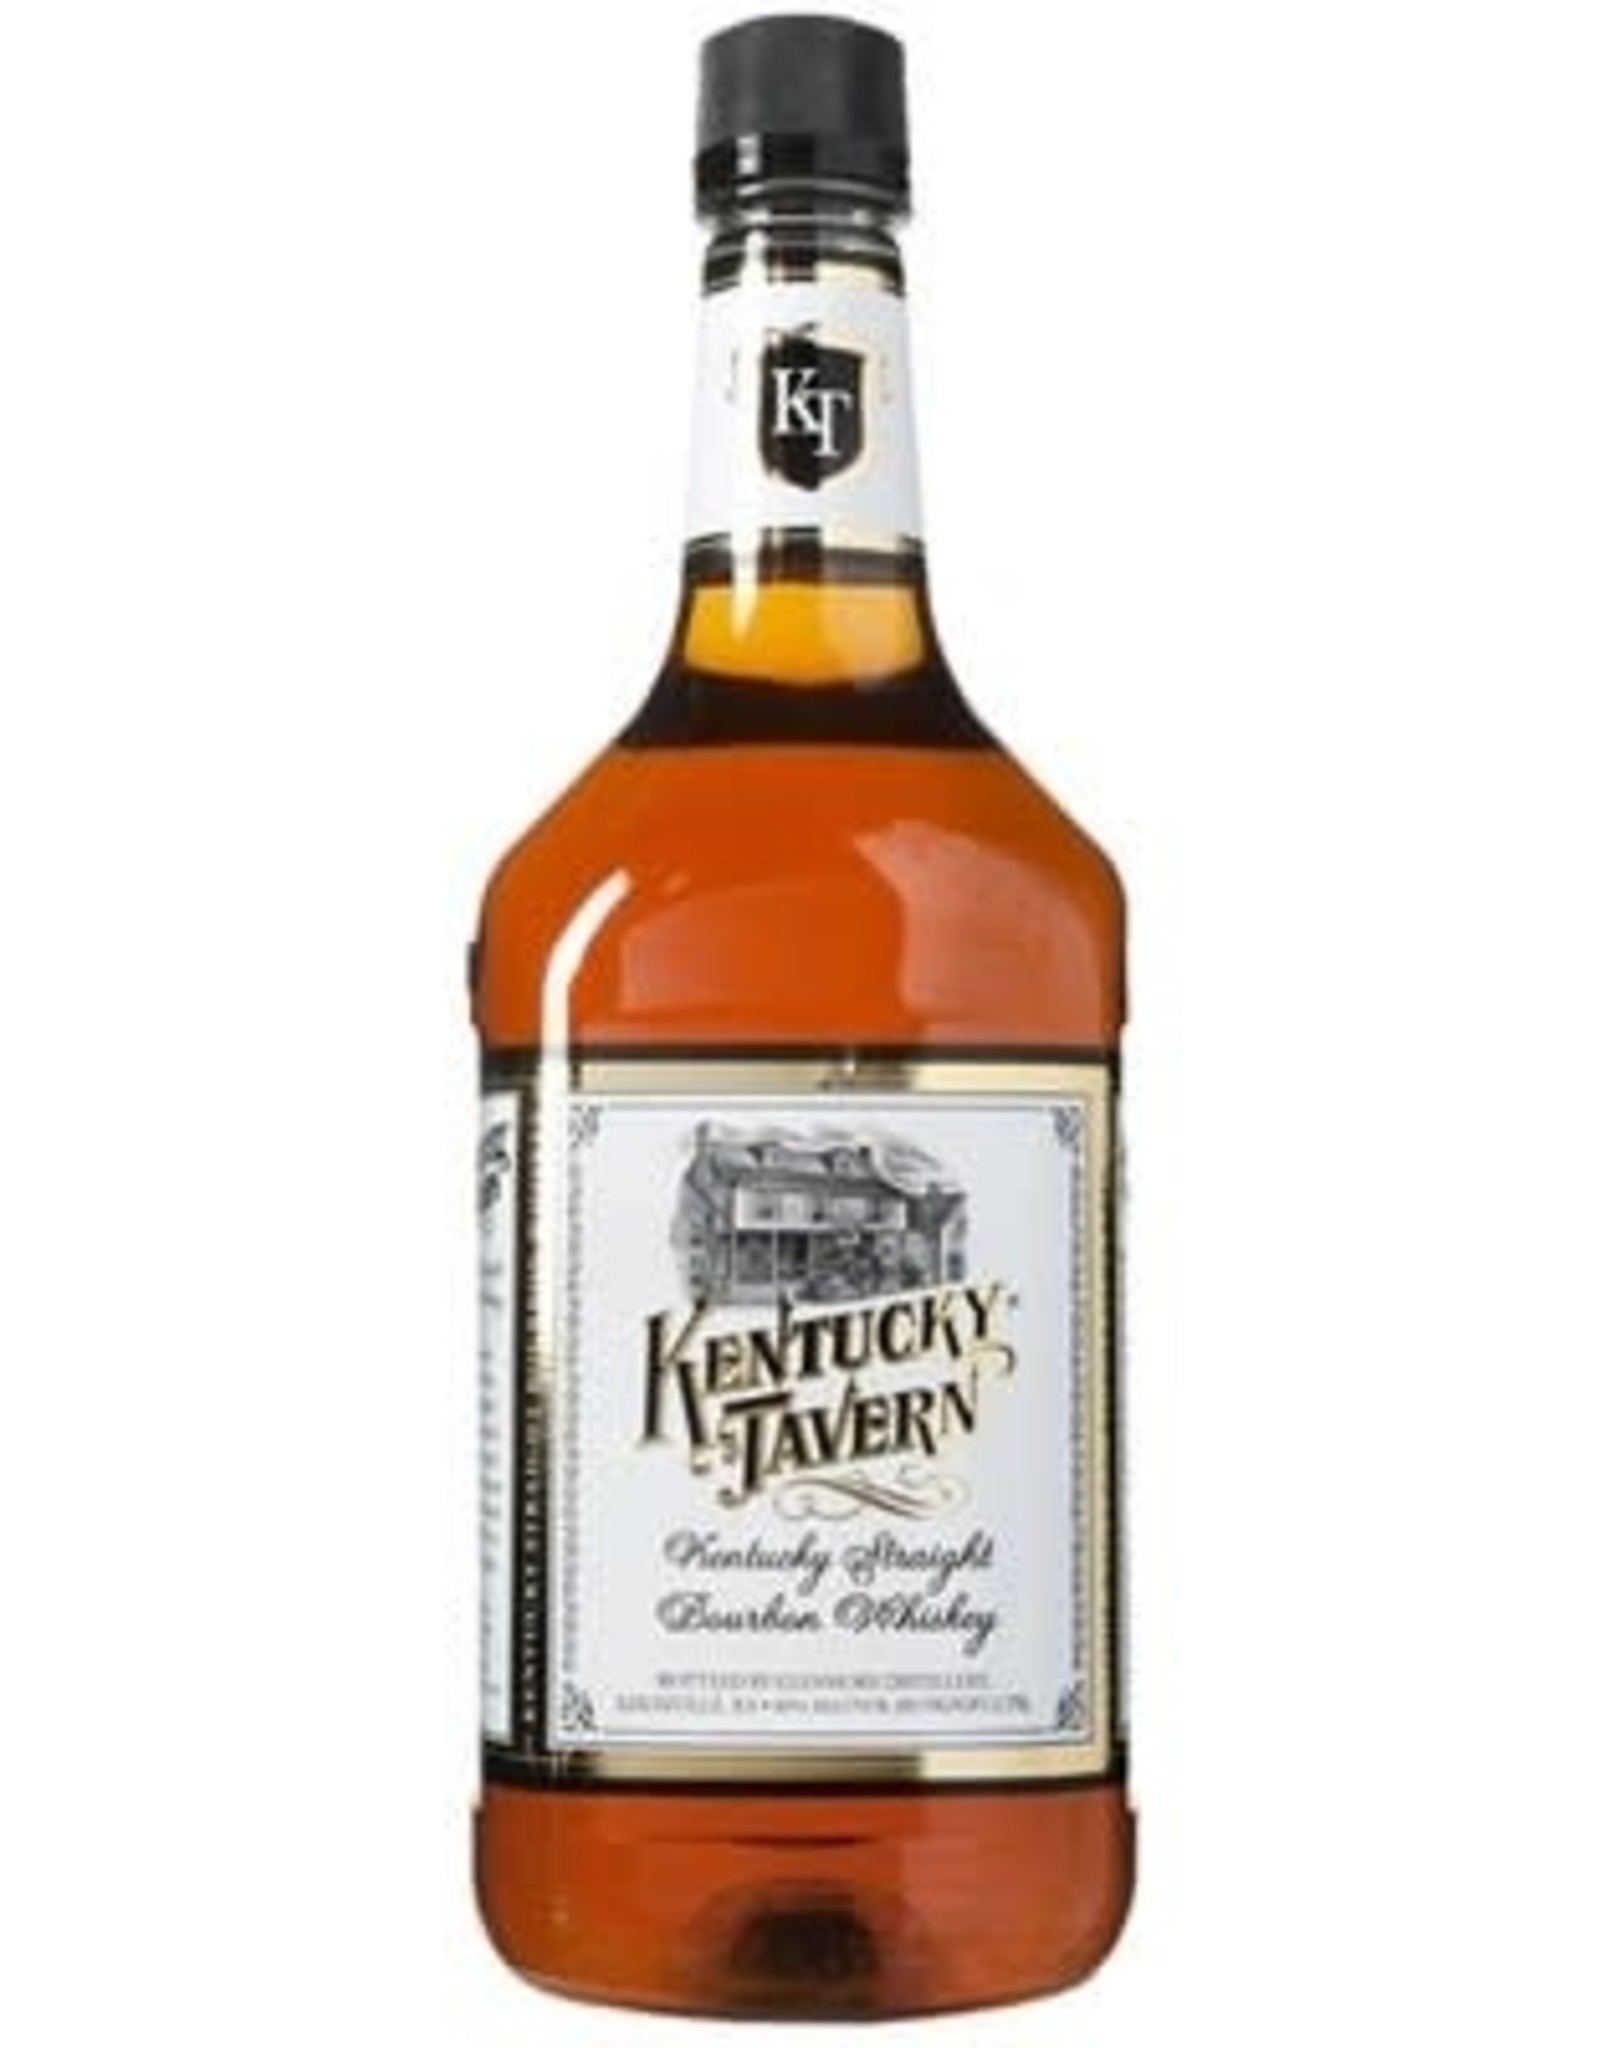 KENTUCKY TAVERN BOURBON 1.75L